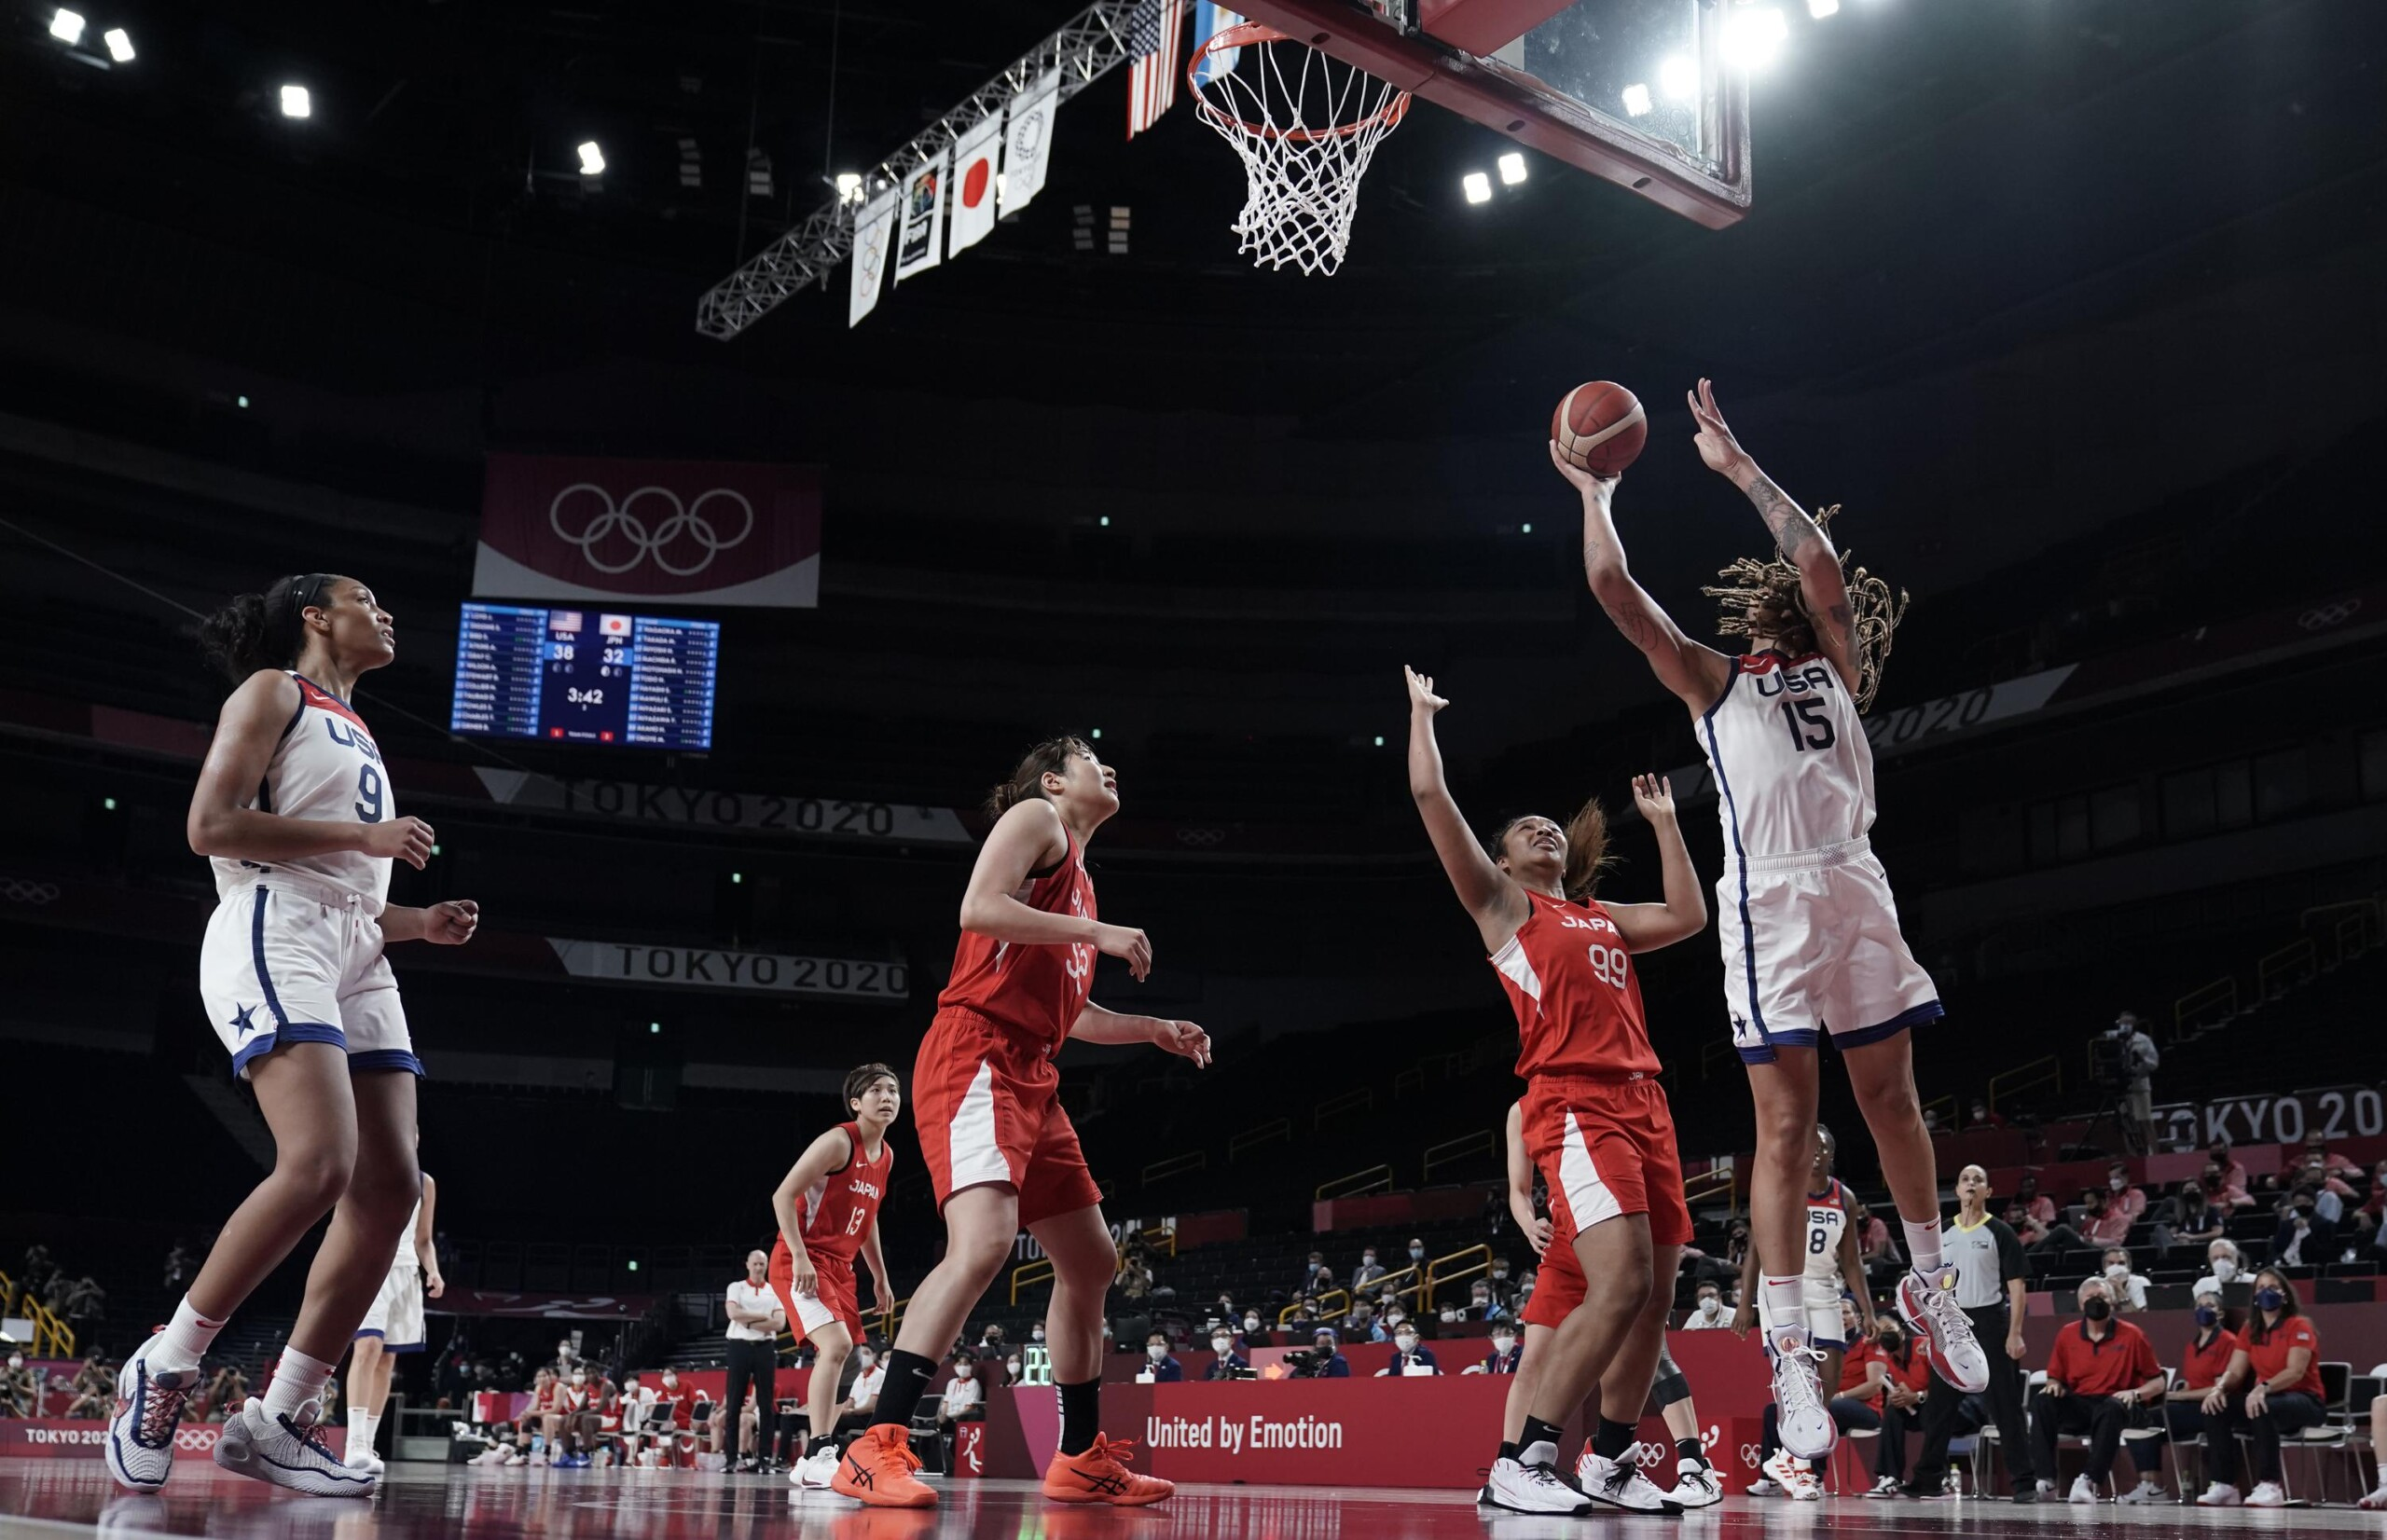 USA beats Japan and wins gold in womens basketball scaled